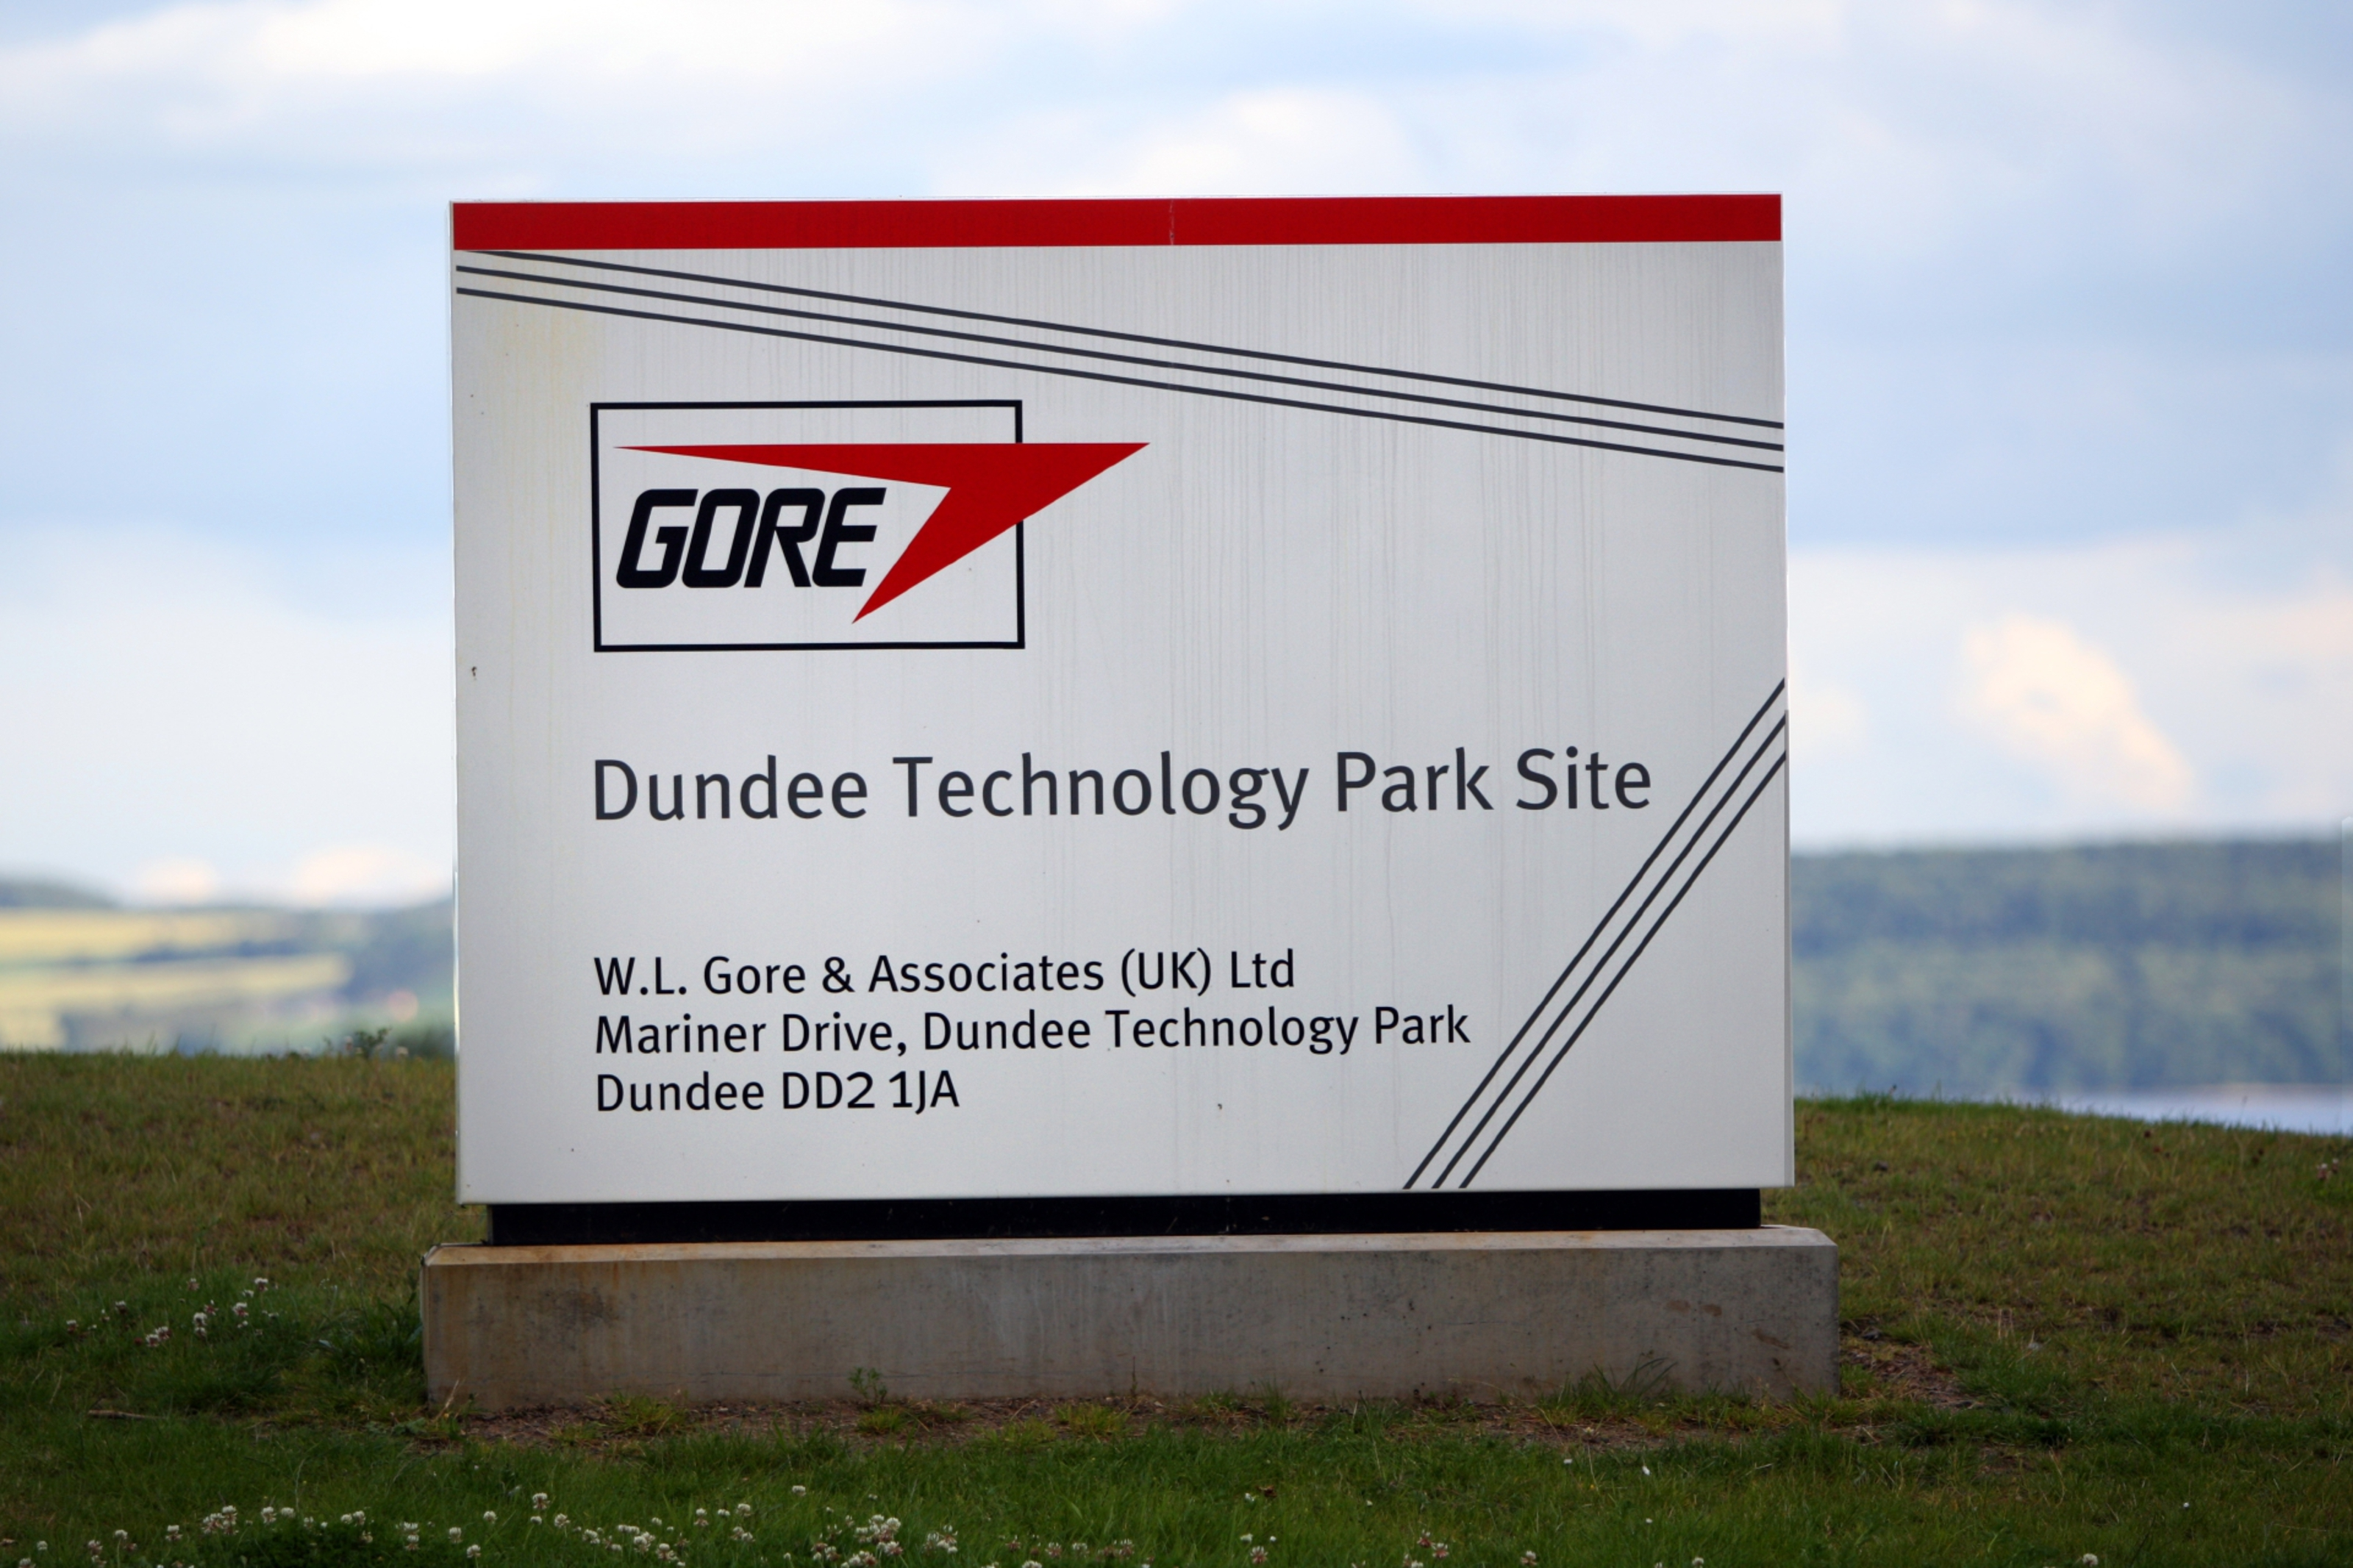 WL Gore & Associates (UK) Ltd, site at Mariner Drive, Dundee Technology Park.